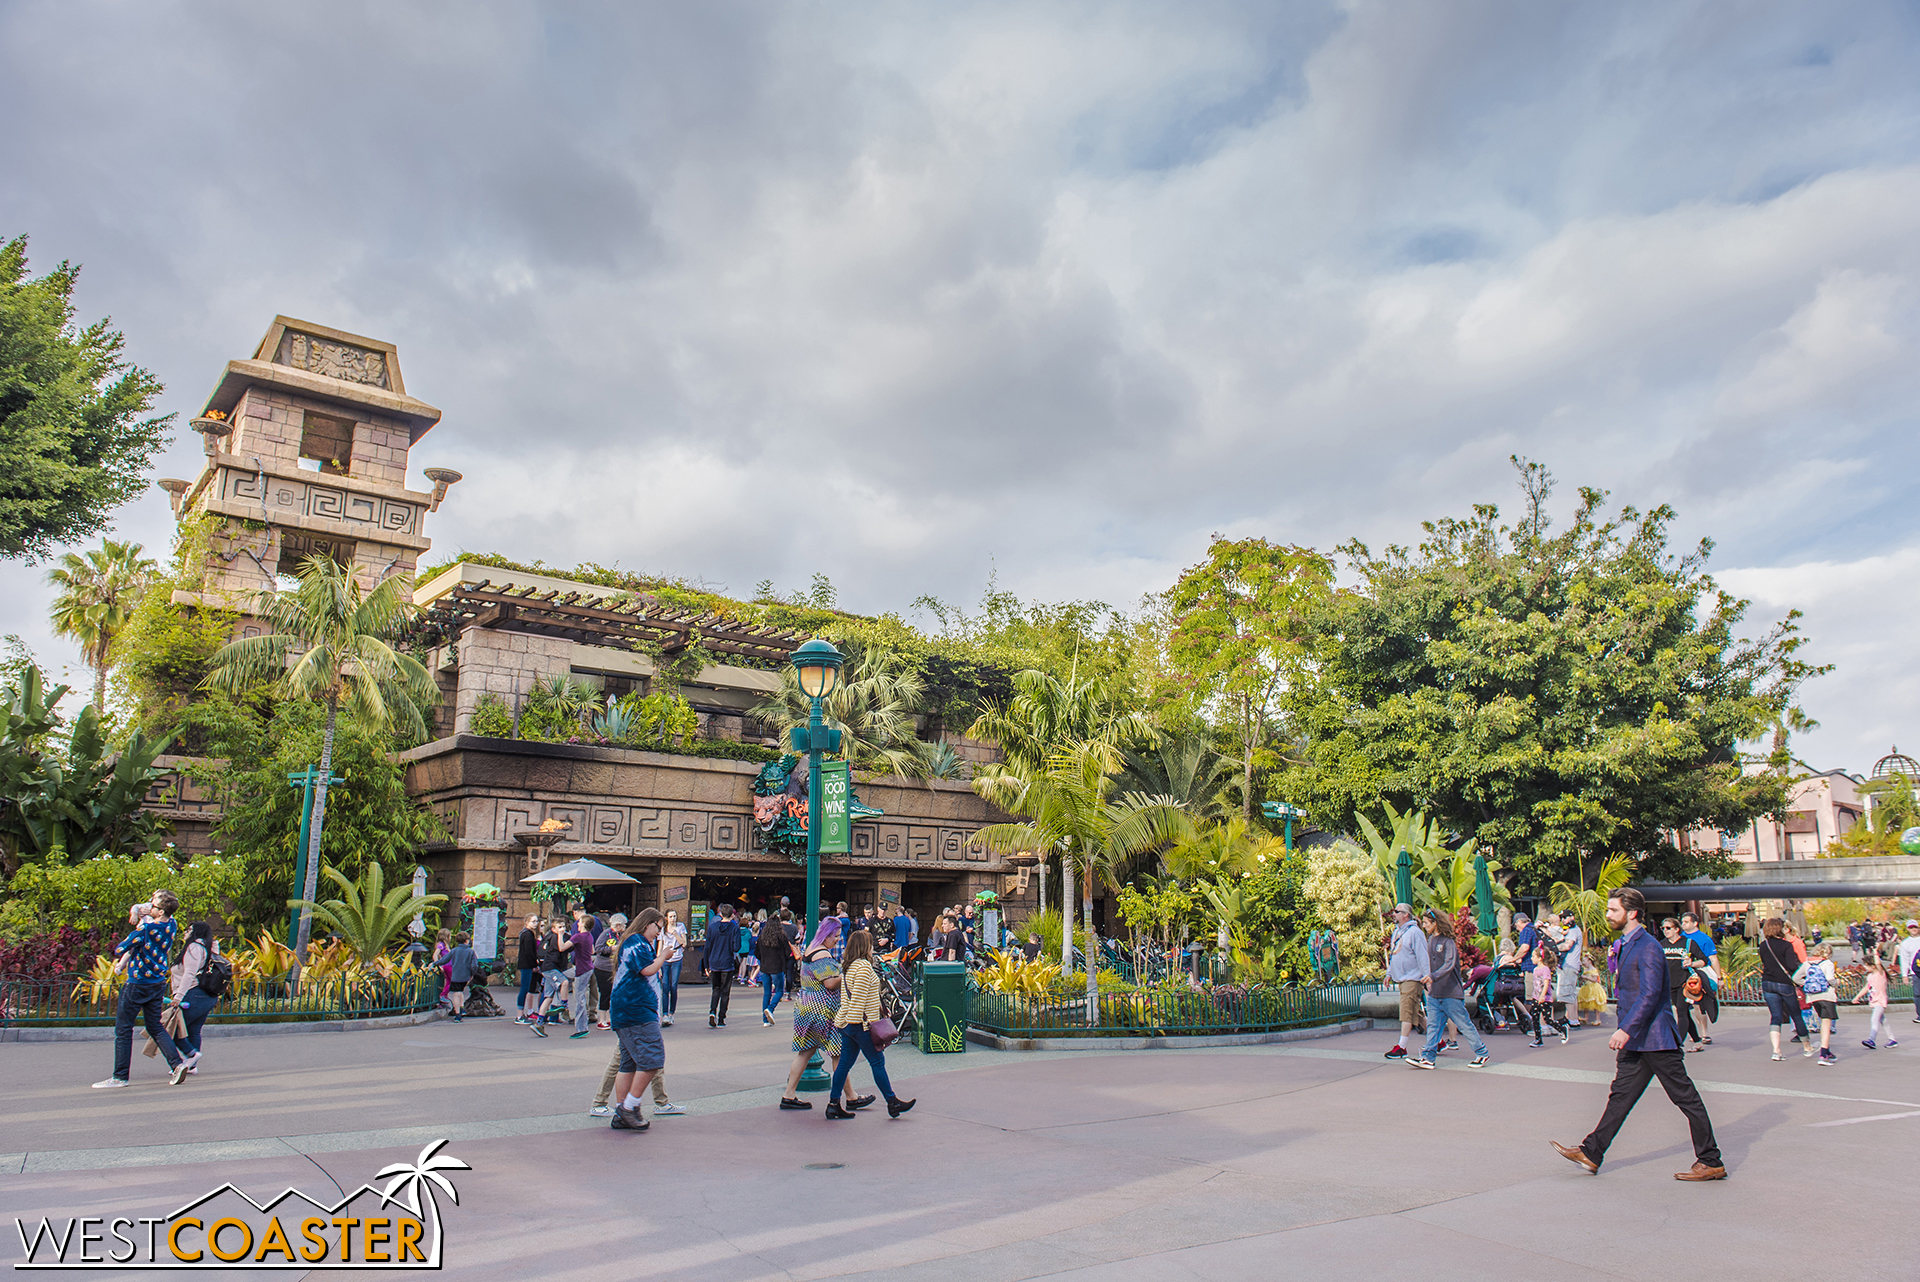 Rainforest Cafe will get razed too. It will not be missed.